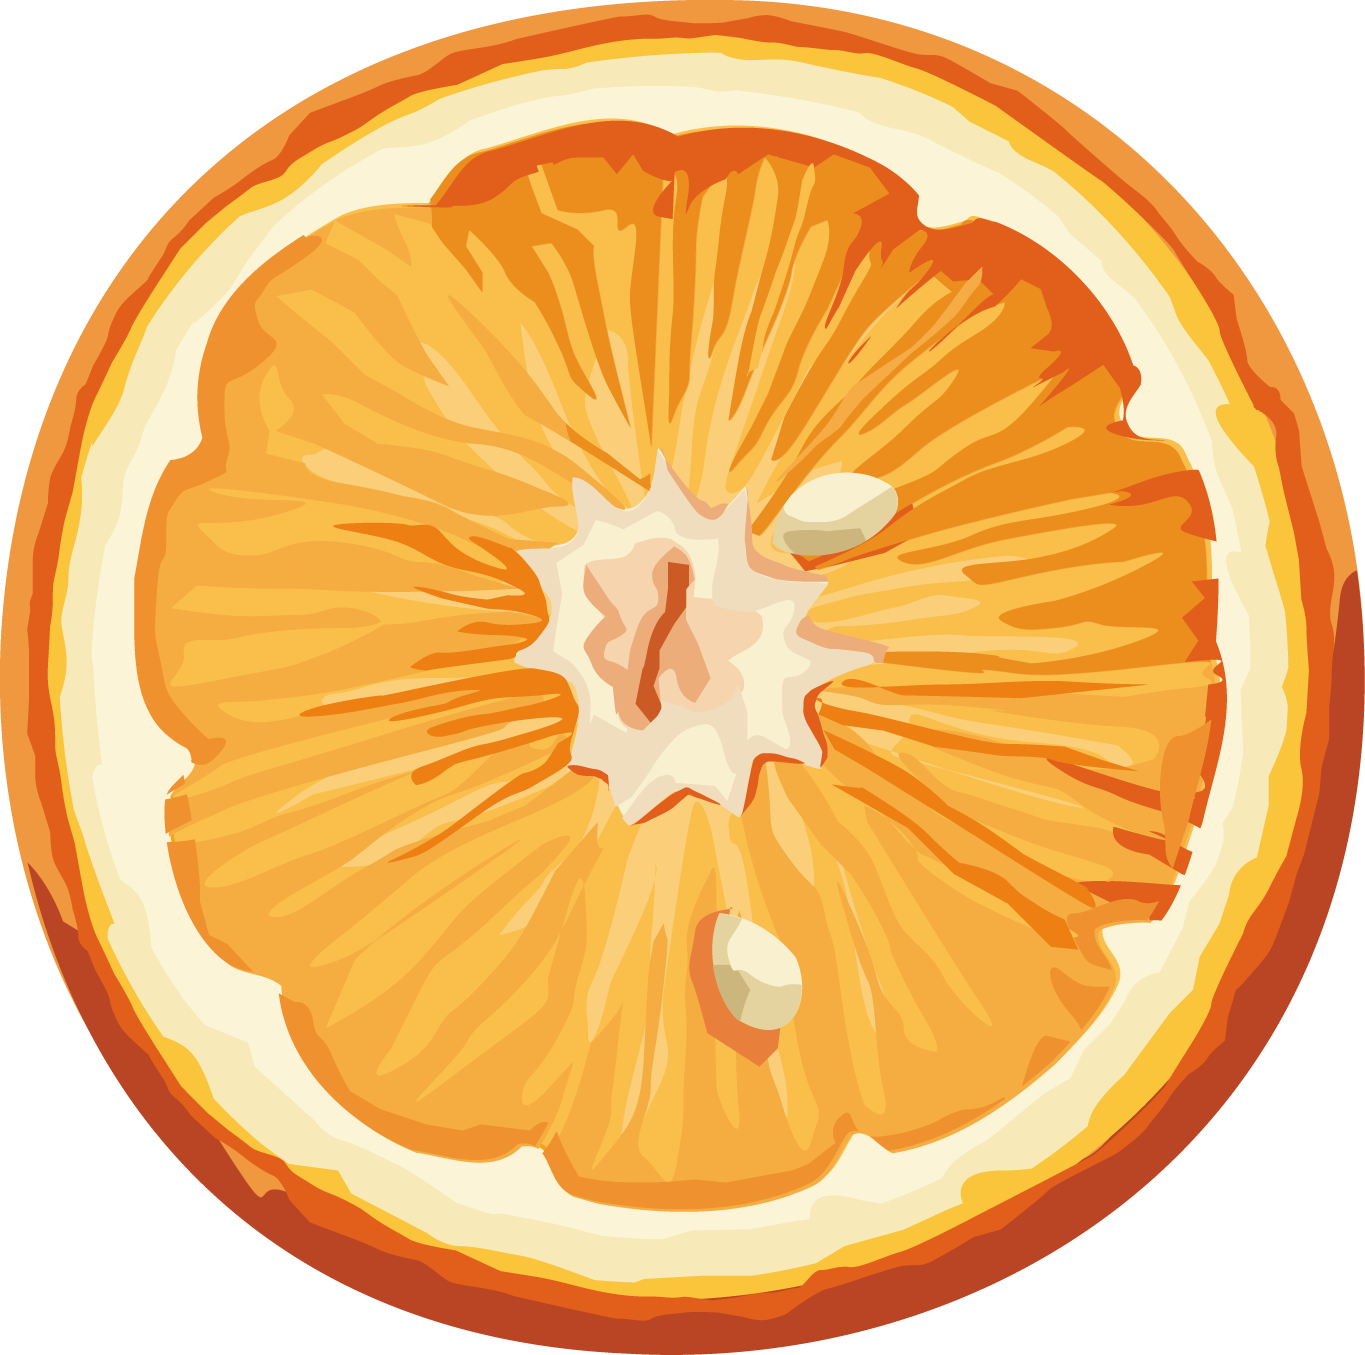 Png image free download. Strawberries clipart orange